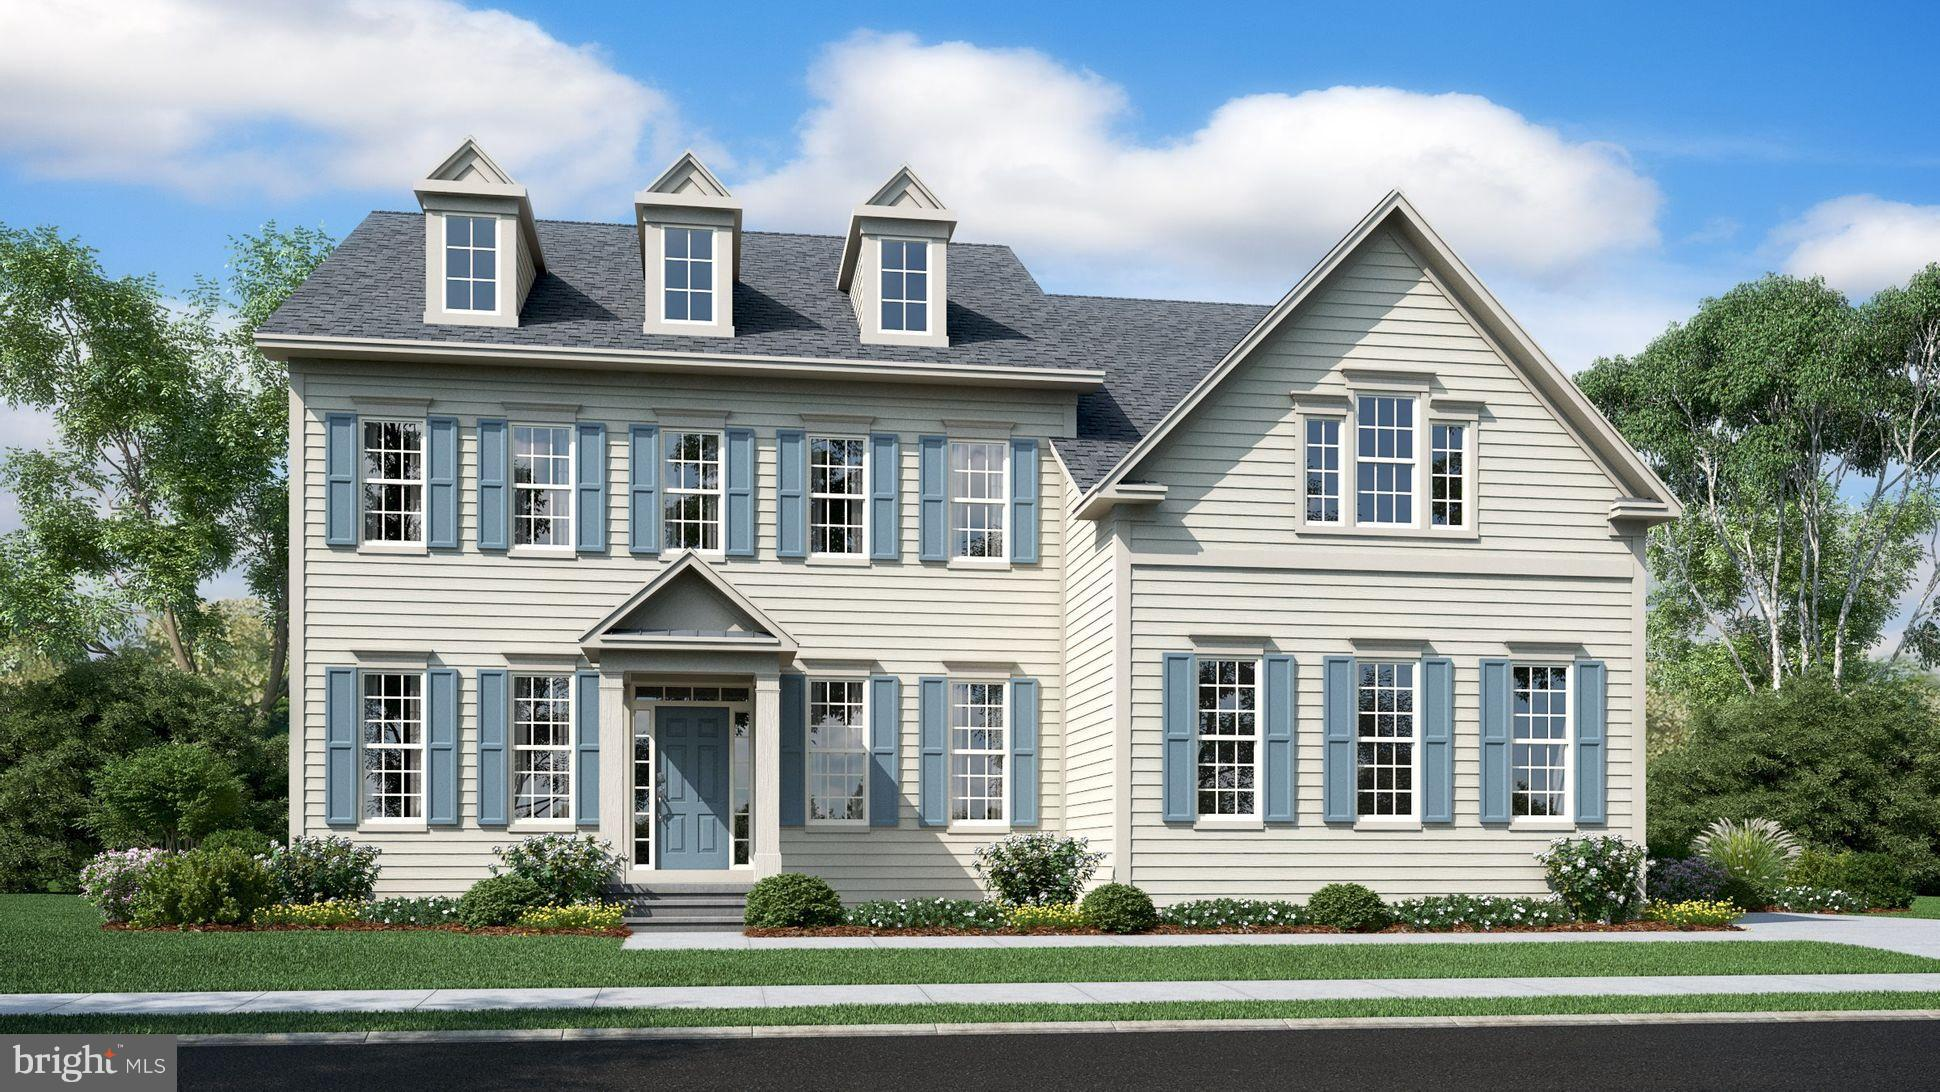 SOUTHER DRIVE-CARLYLE, CENTREVILLE, VA 20120